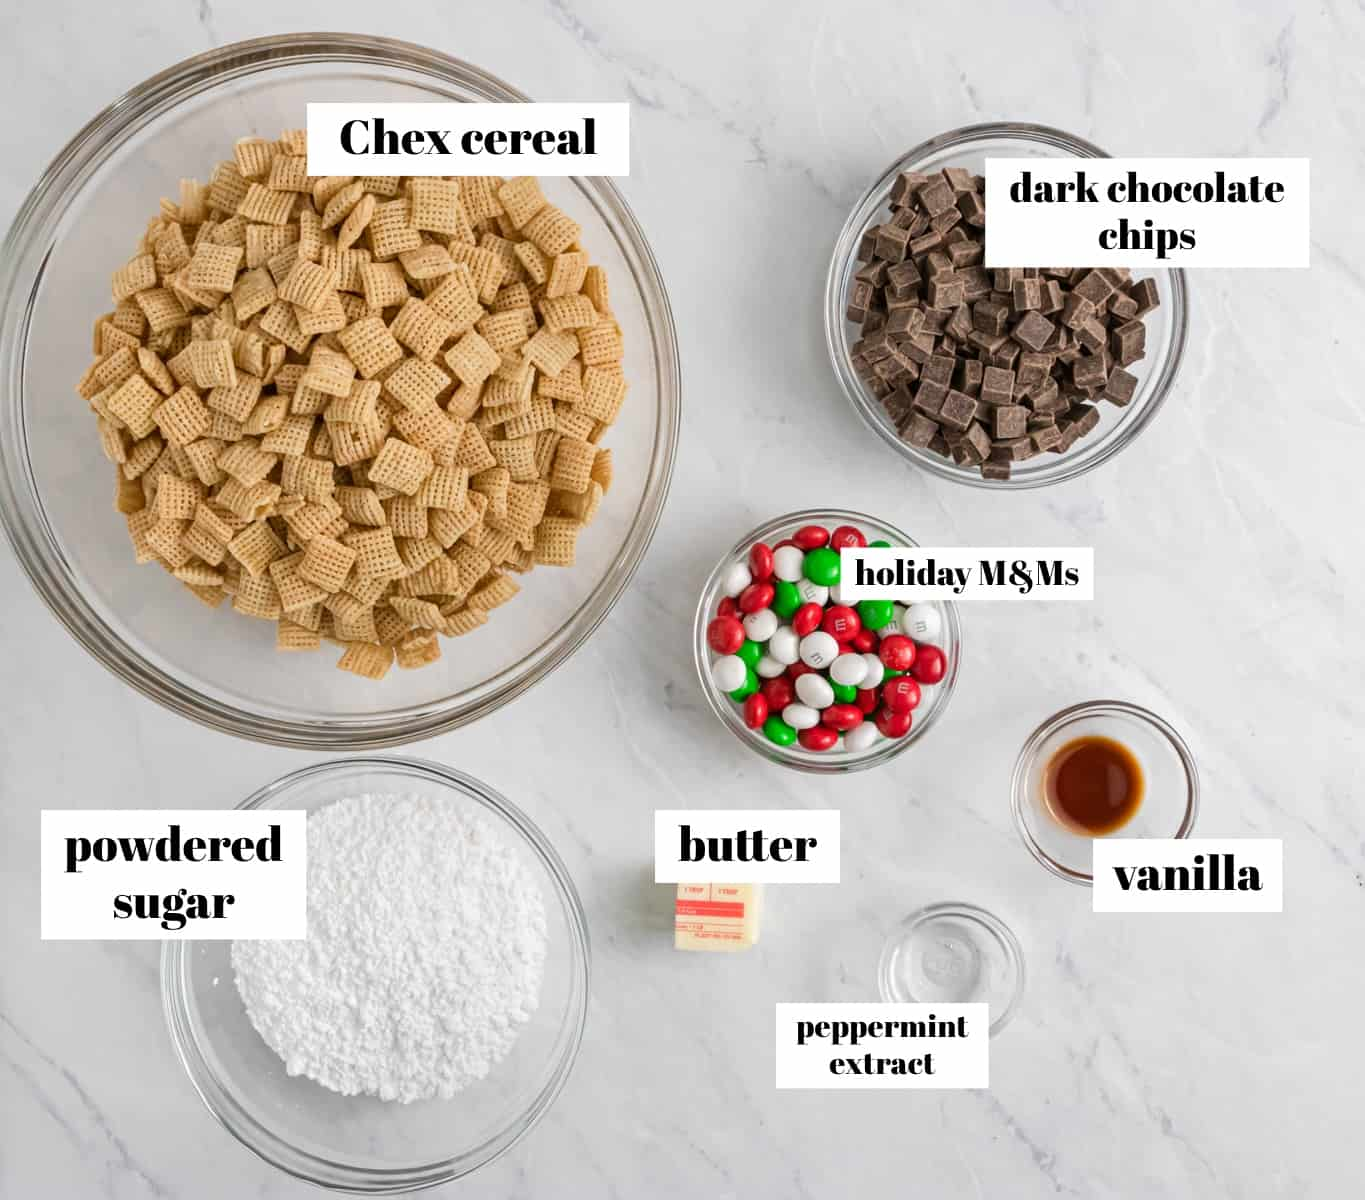 Chex, chocolate, powdered sugar and ingredients labeled on counter.